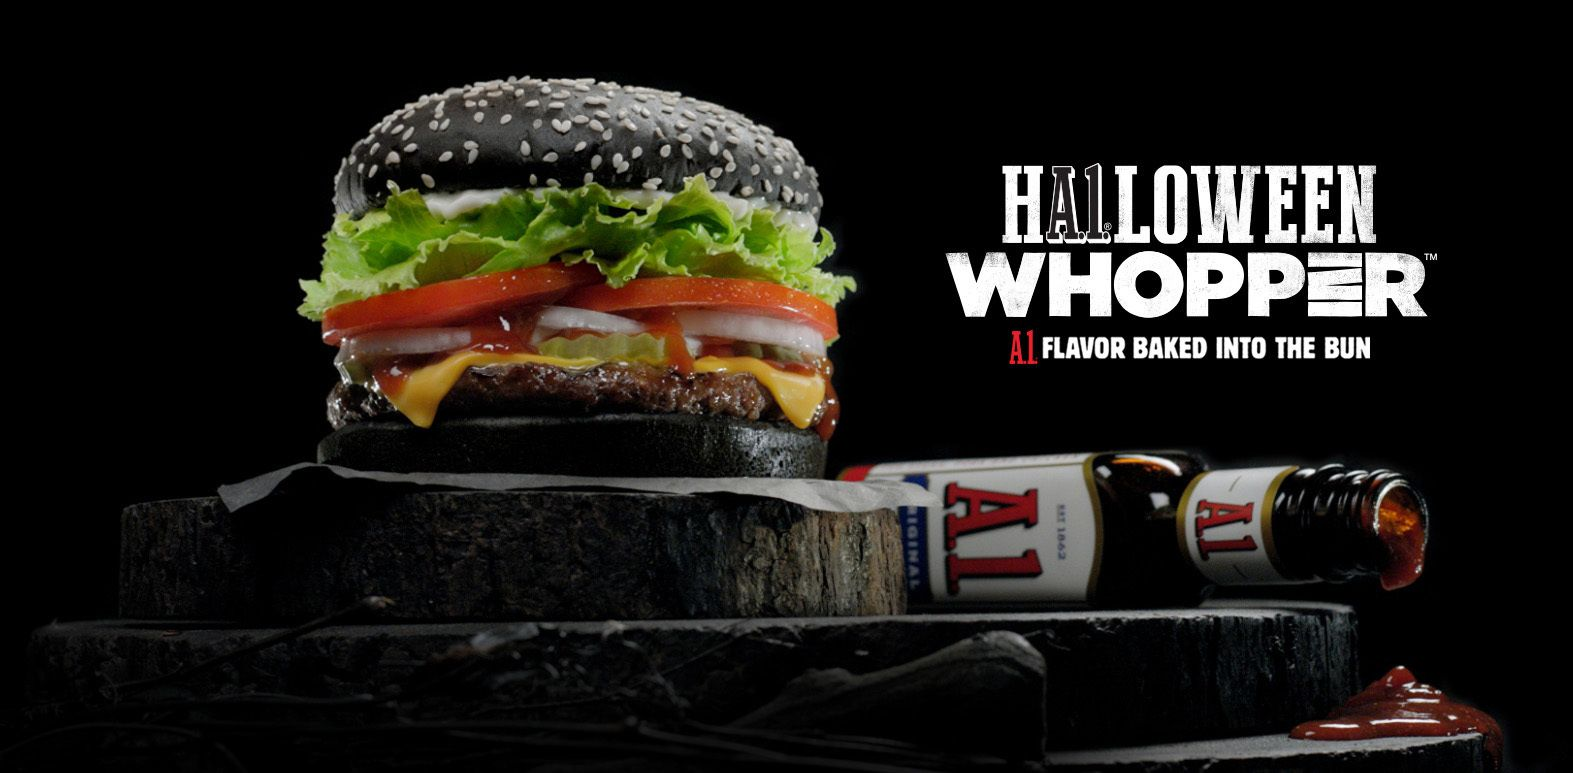 Burger King Restaurants Unveil The A 1 Halloween Whopper Sandwich With A 1 Flavor Baked Into The Black Bun Burger Halloween Whopper Black Burger